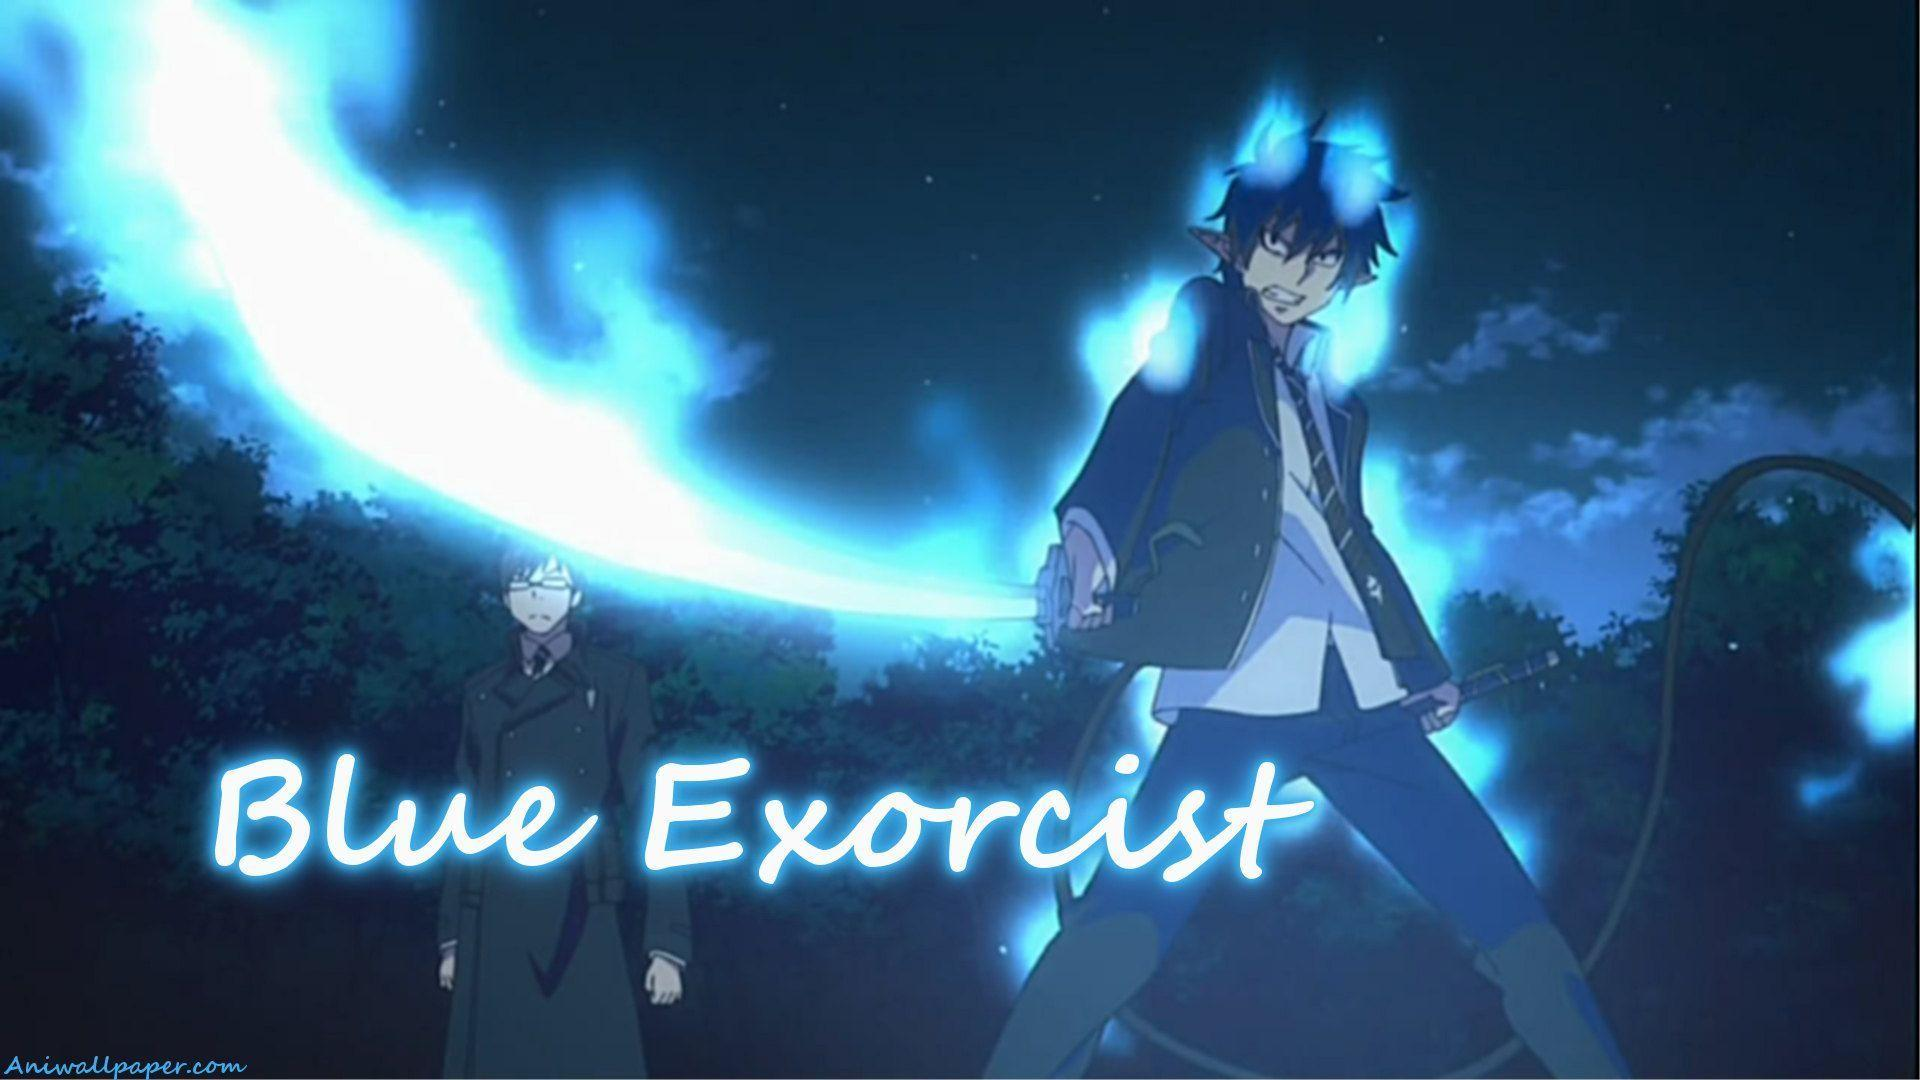 blue exorcist computer wallpapers - photo #9